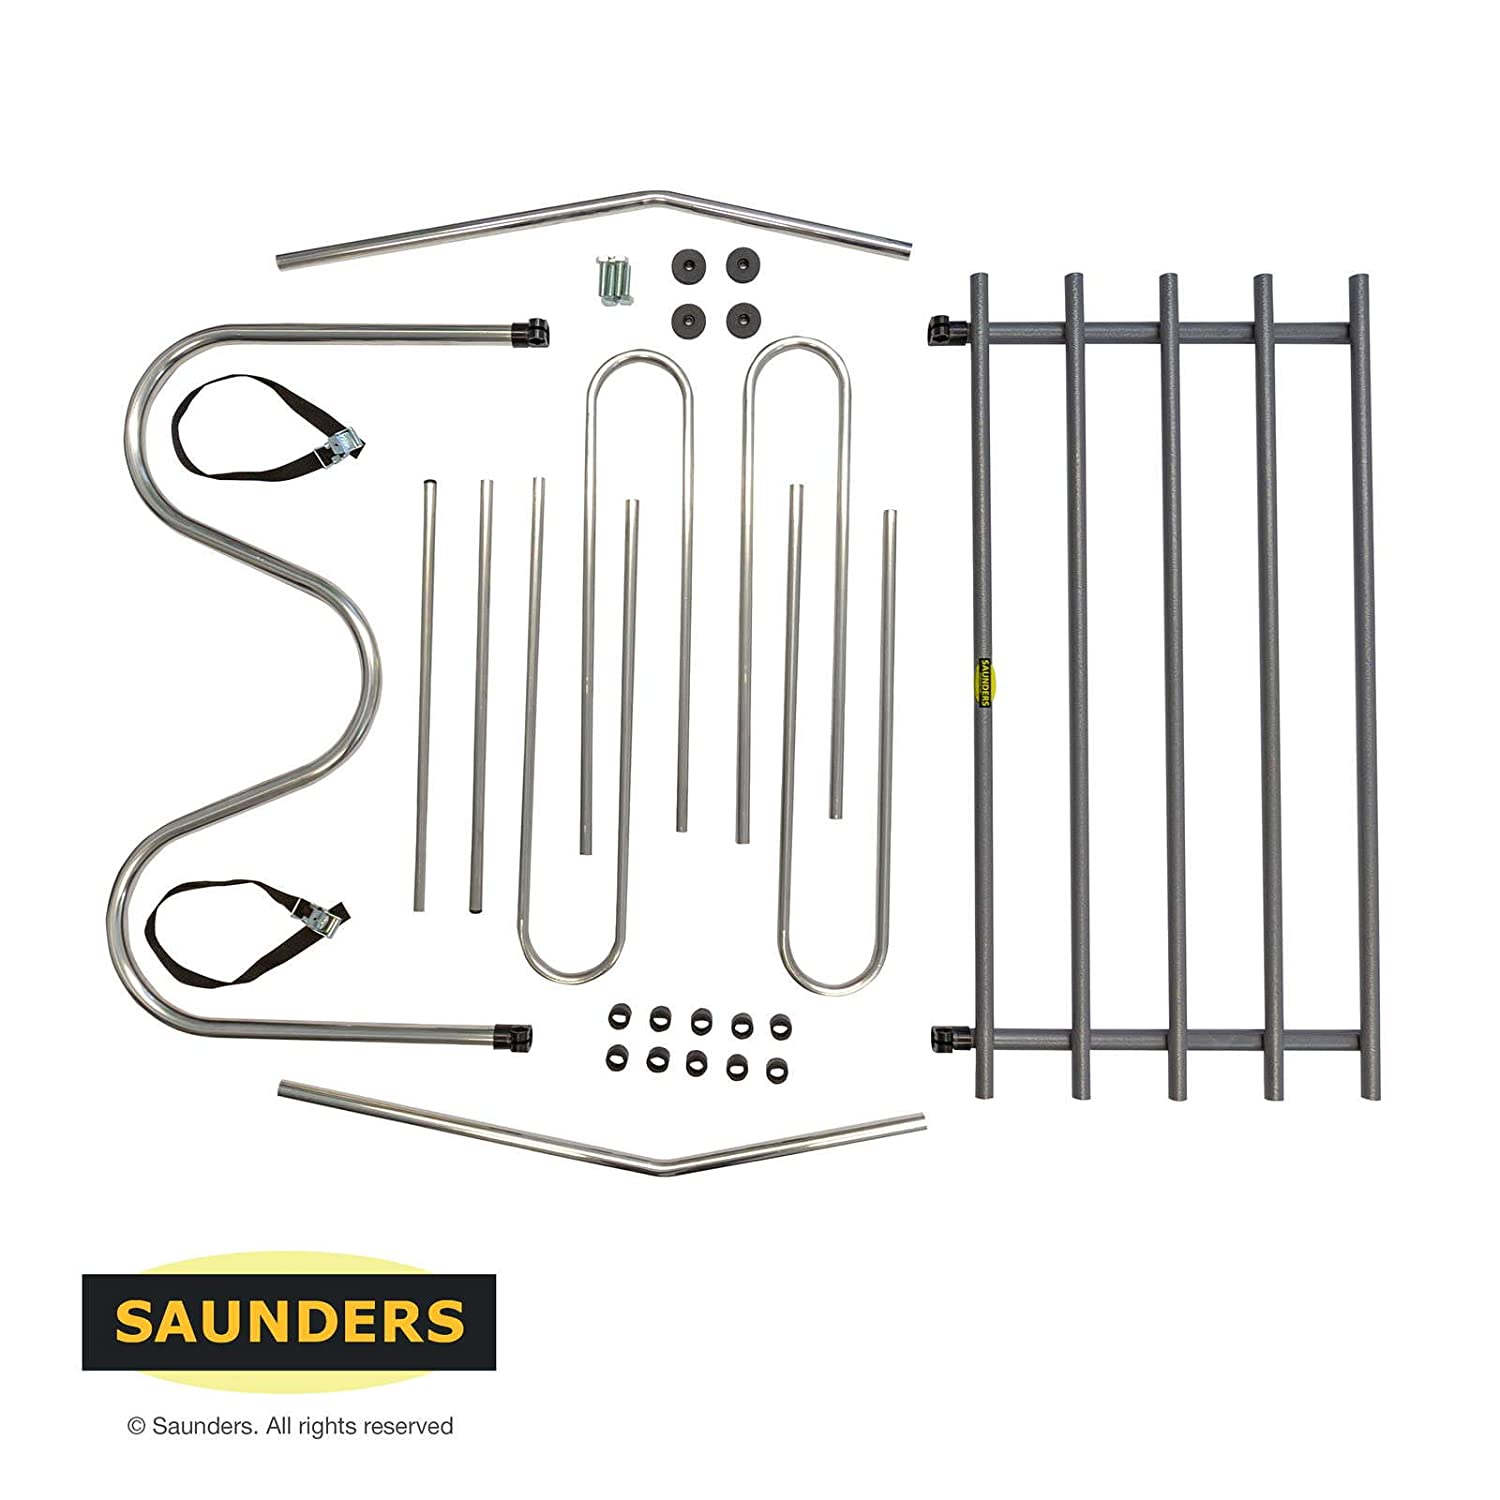 Saunders T95 Tubular Car Dog Guard Barrier Large Fits Seat Top to Roof Gap of 33cm to 41cm